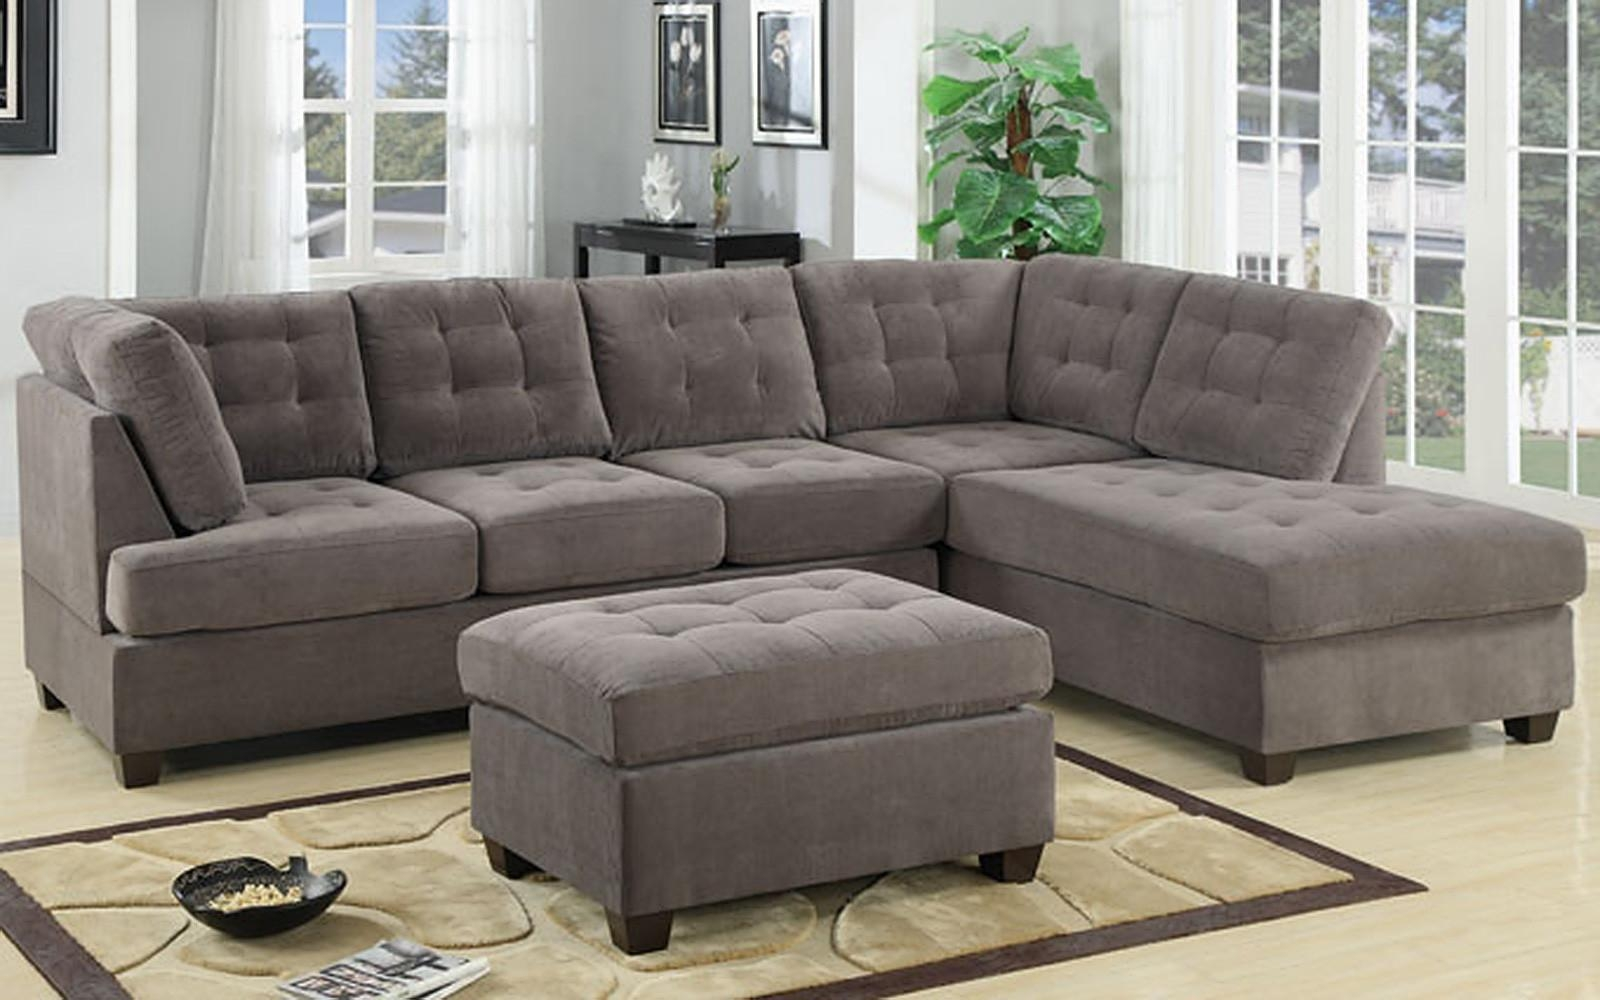 Bobkona Benford 2 Piece Chaise Sectional Sofa Collection With Faux In Sectional Sofa With 2 Chaises (Image 9 of 20)